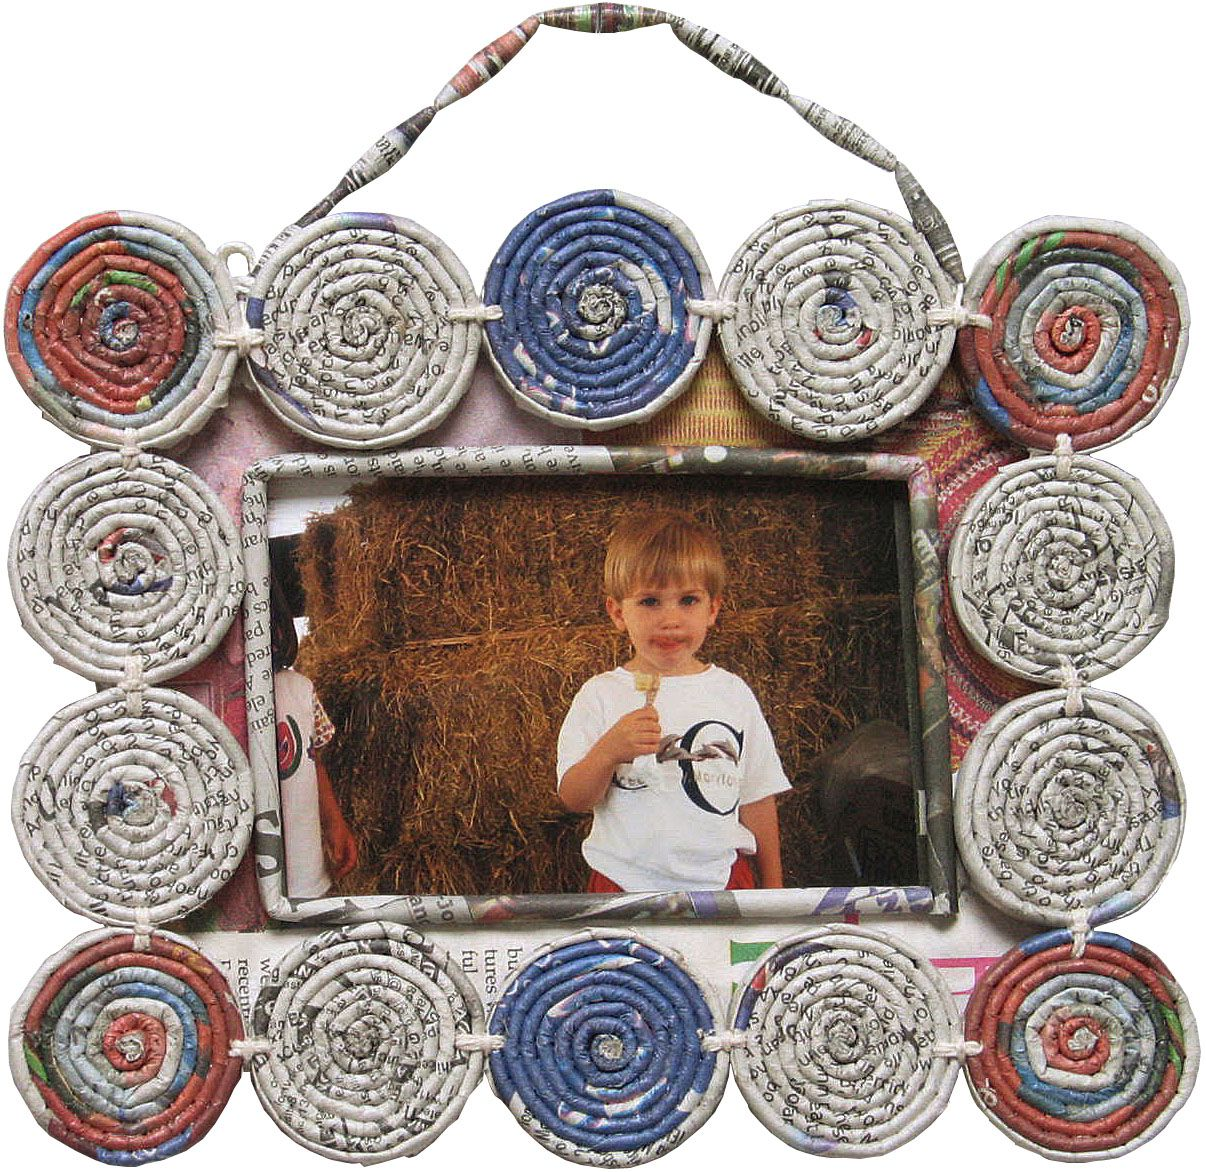 Recycle in style with this hand crafted frame made of coiled ...